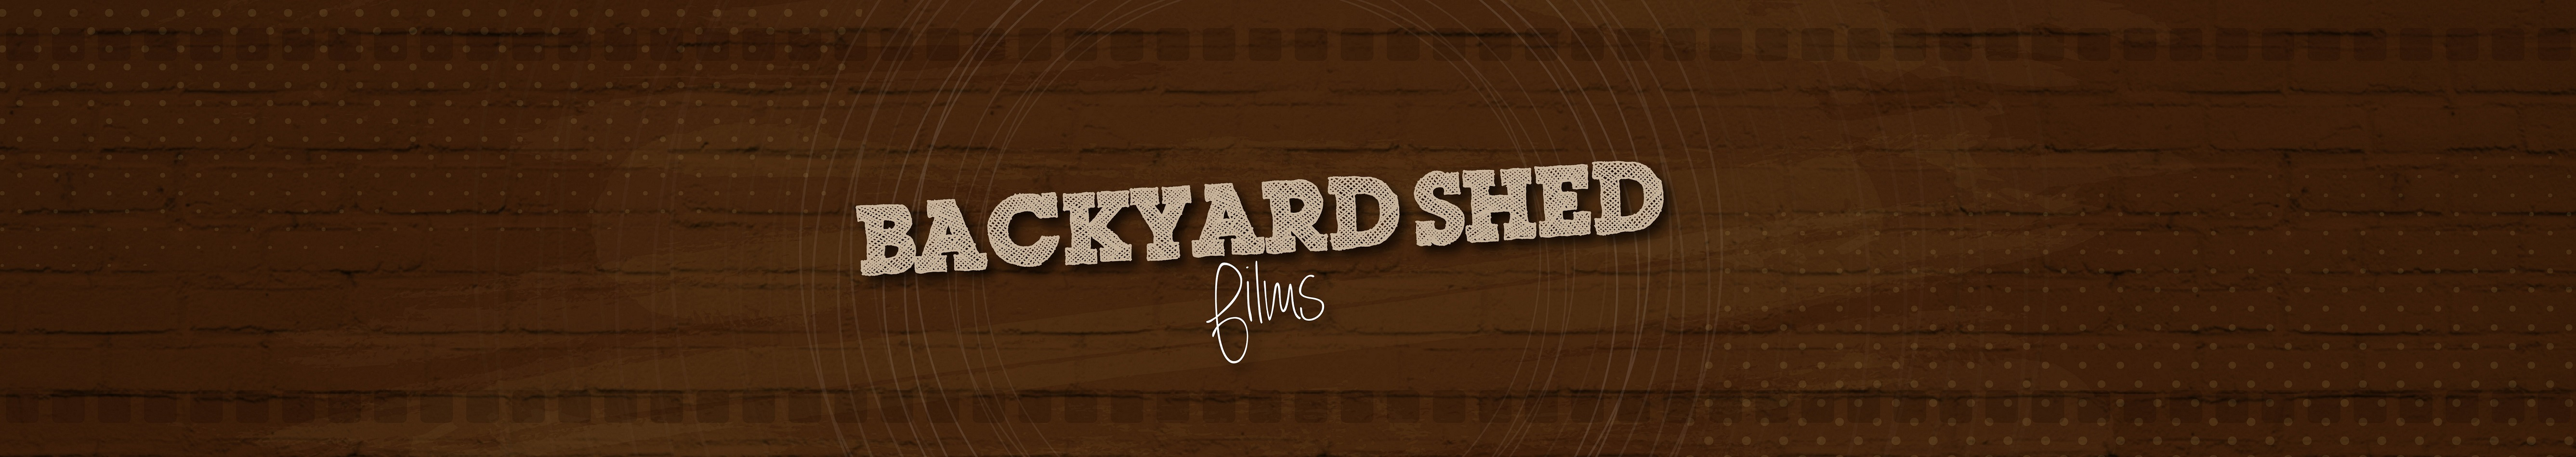 Testimonials | Backyard Shed Films